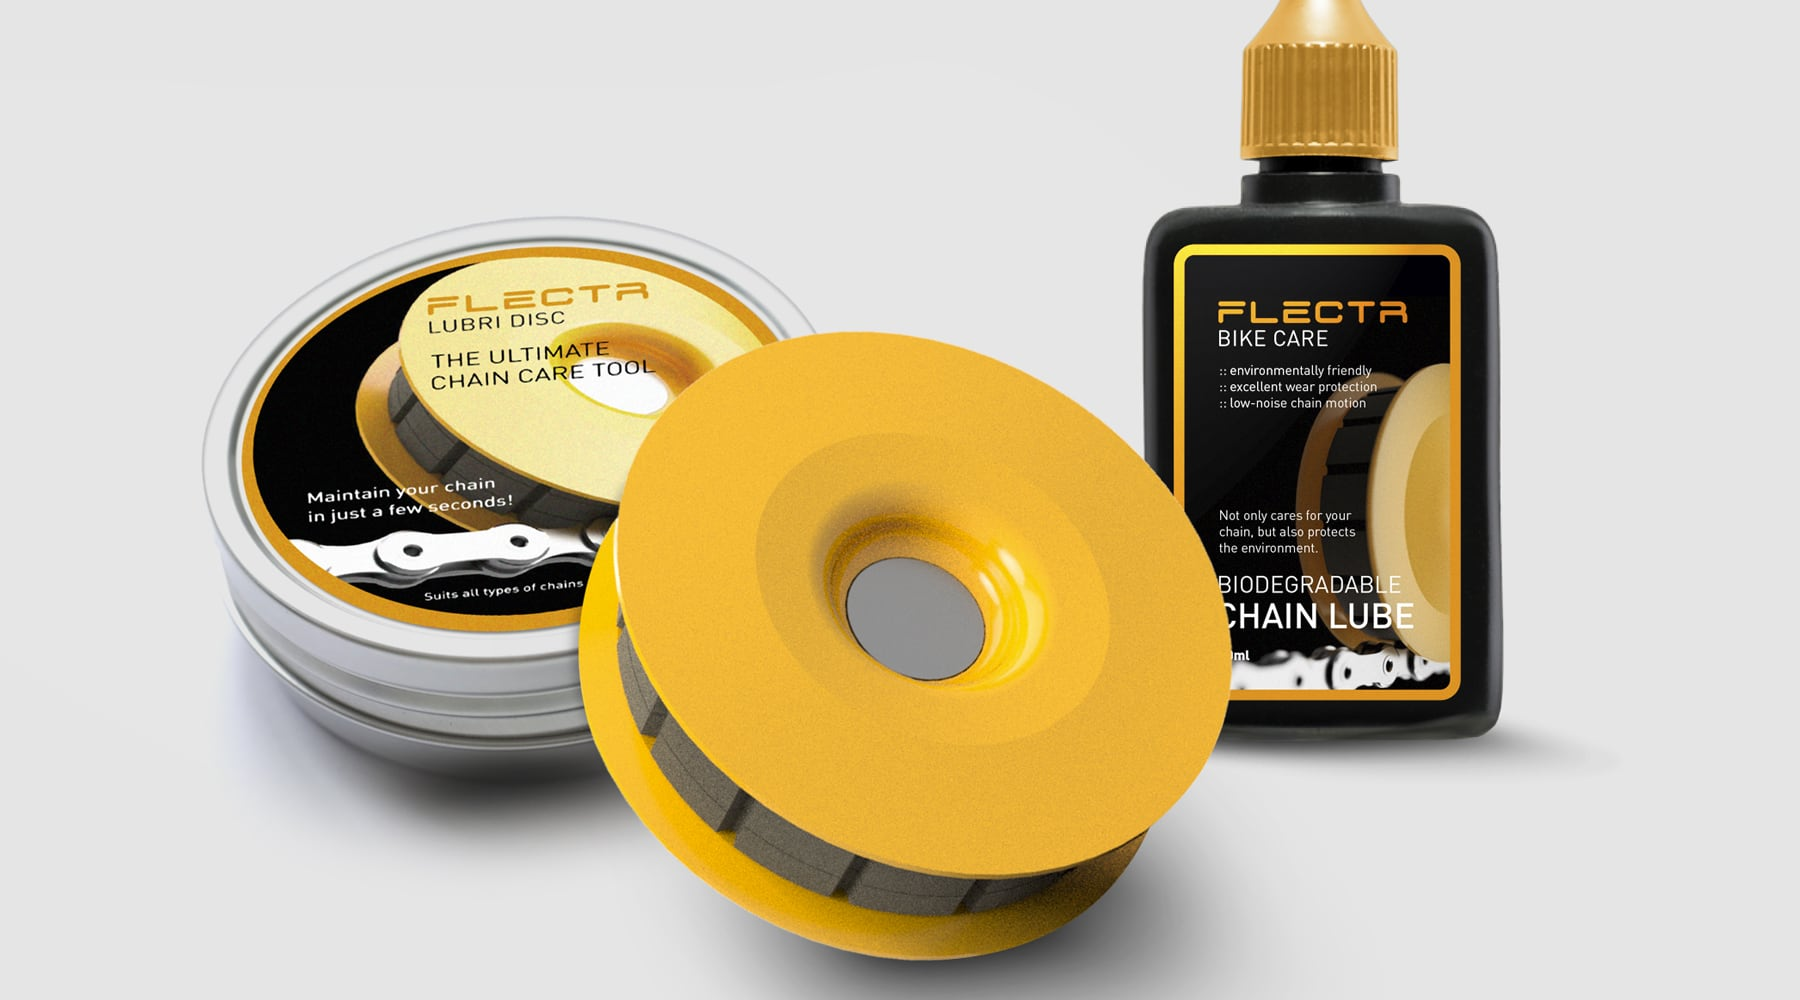 FLECTR LUBRI DISC and FLECTR BIO CHAIN LUBE